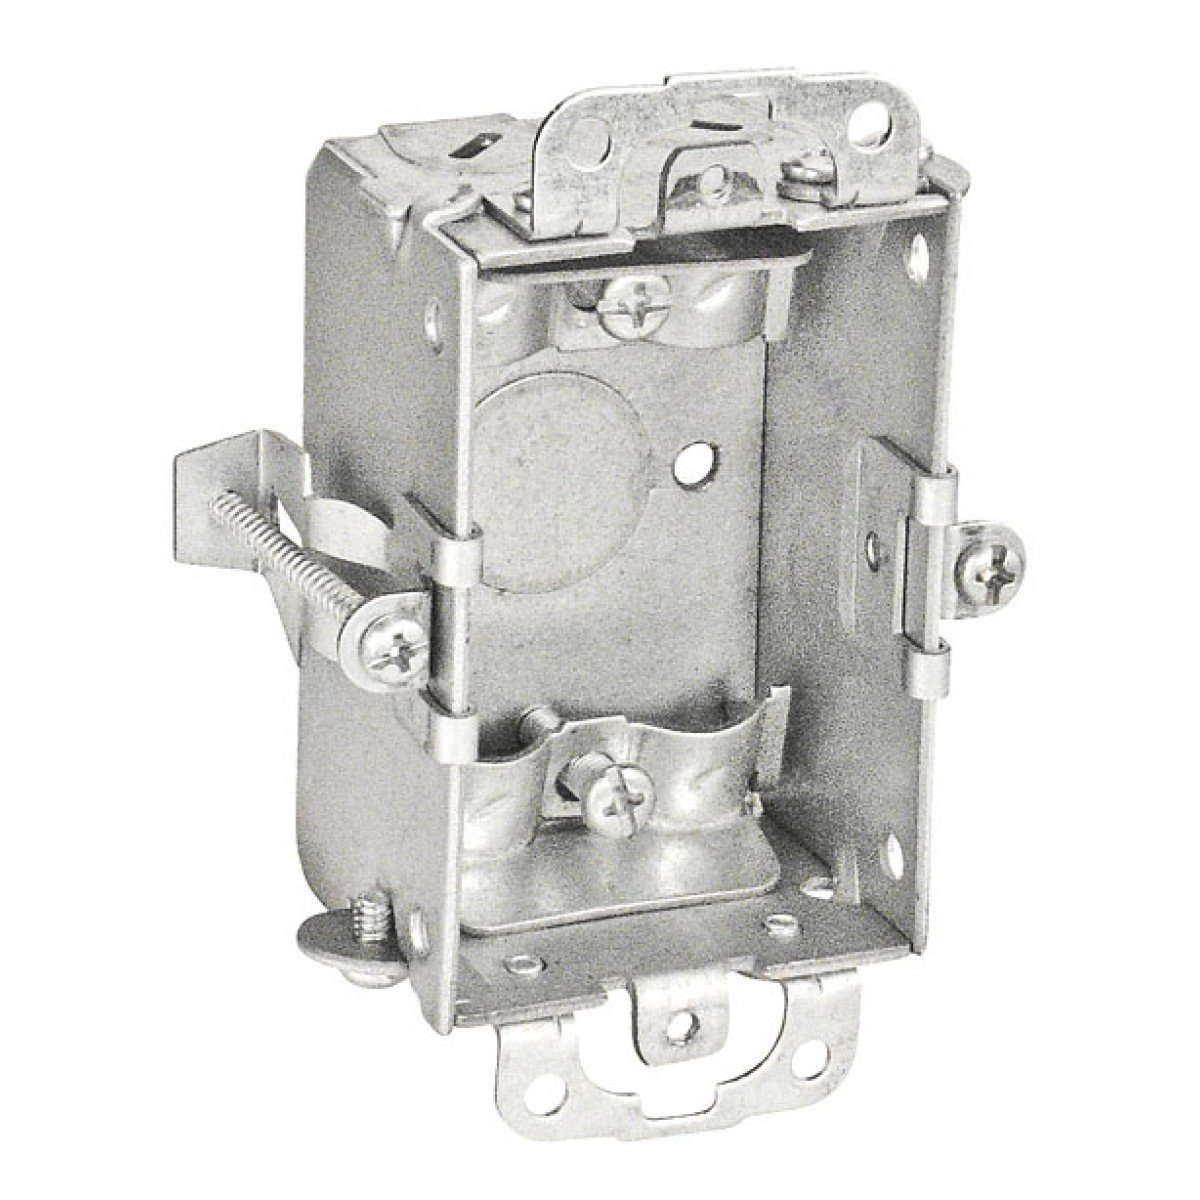 2 Pcs, 1-1/2 In. Deep Switch Box w/Clamps for Nonmetallic Sheathed Cable w/Old Work Clips, Zinc Plated Steel, (1) 1/2 In. Bottom Knockout